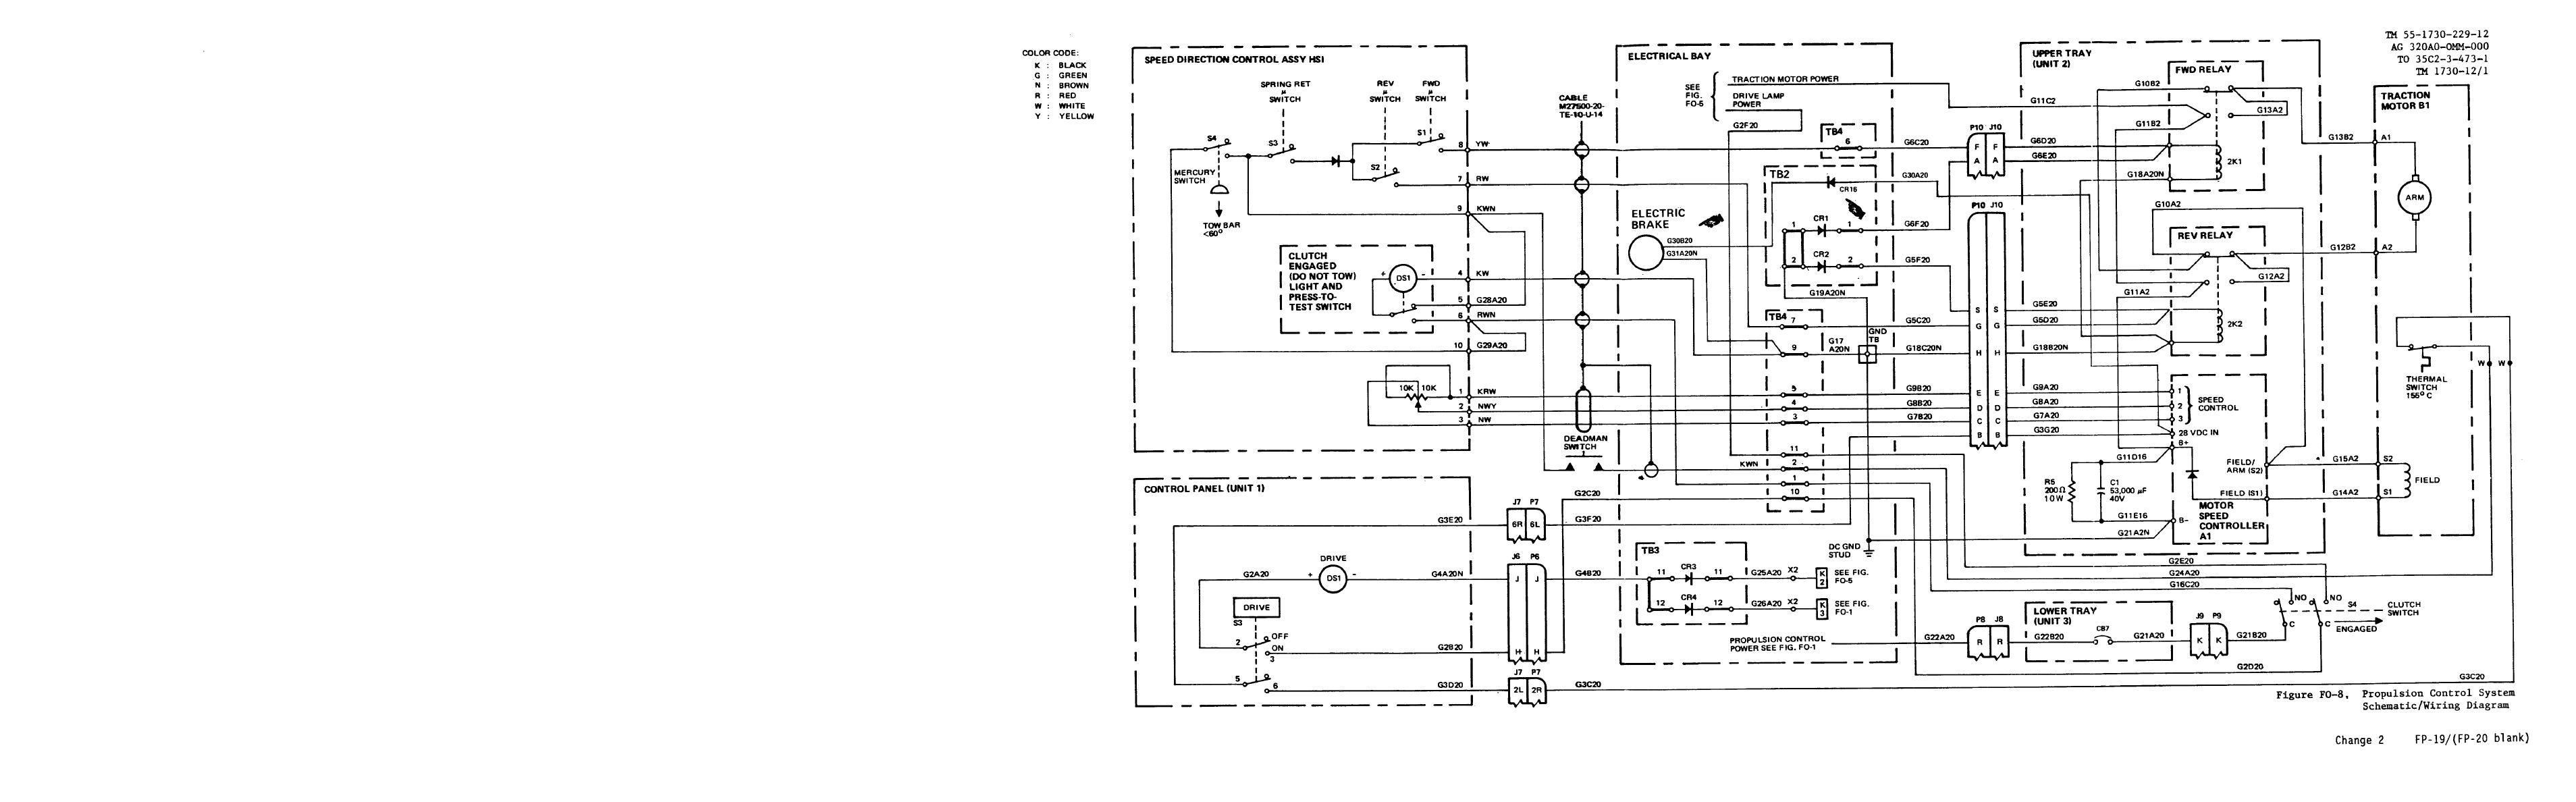 TM 55 1730 229 120551im figure fo 8 propulsion control system schematic wiring diagram wiring diagram for access control system at edmiracle.co